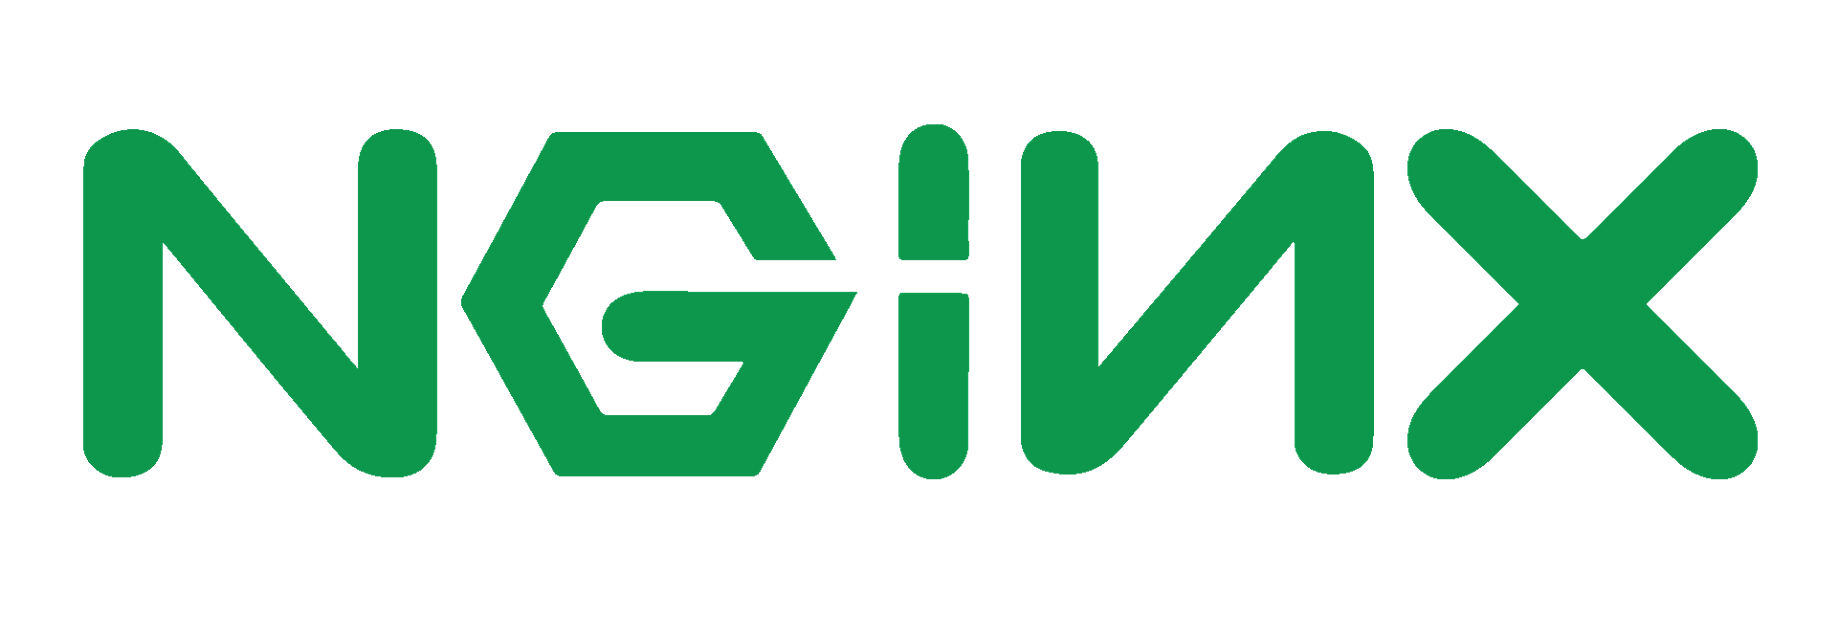 How to build Nginx from source with required modules like zlib, OpenSSL?